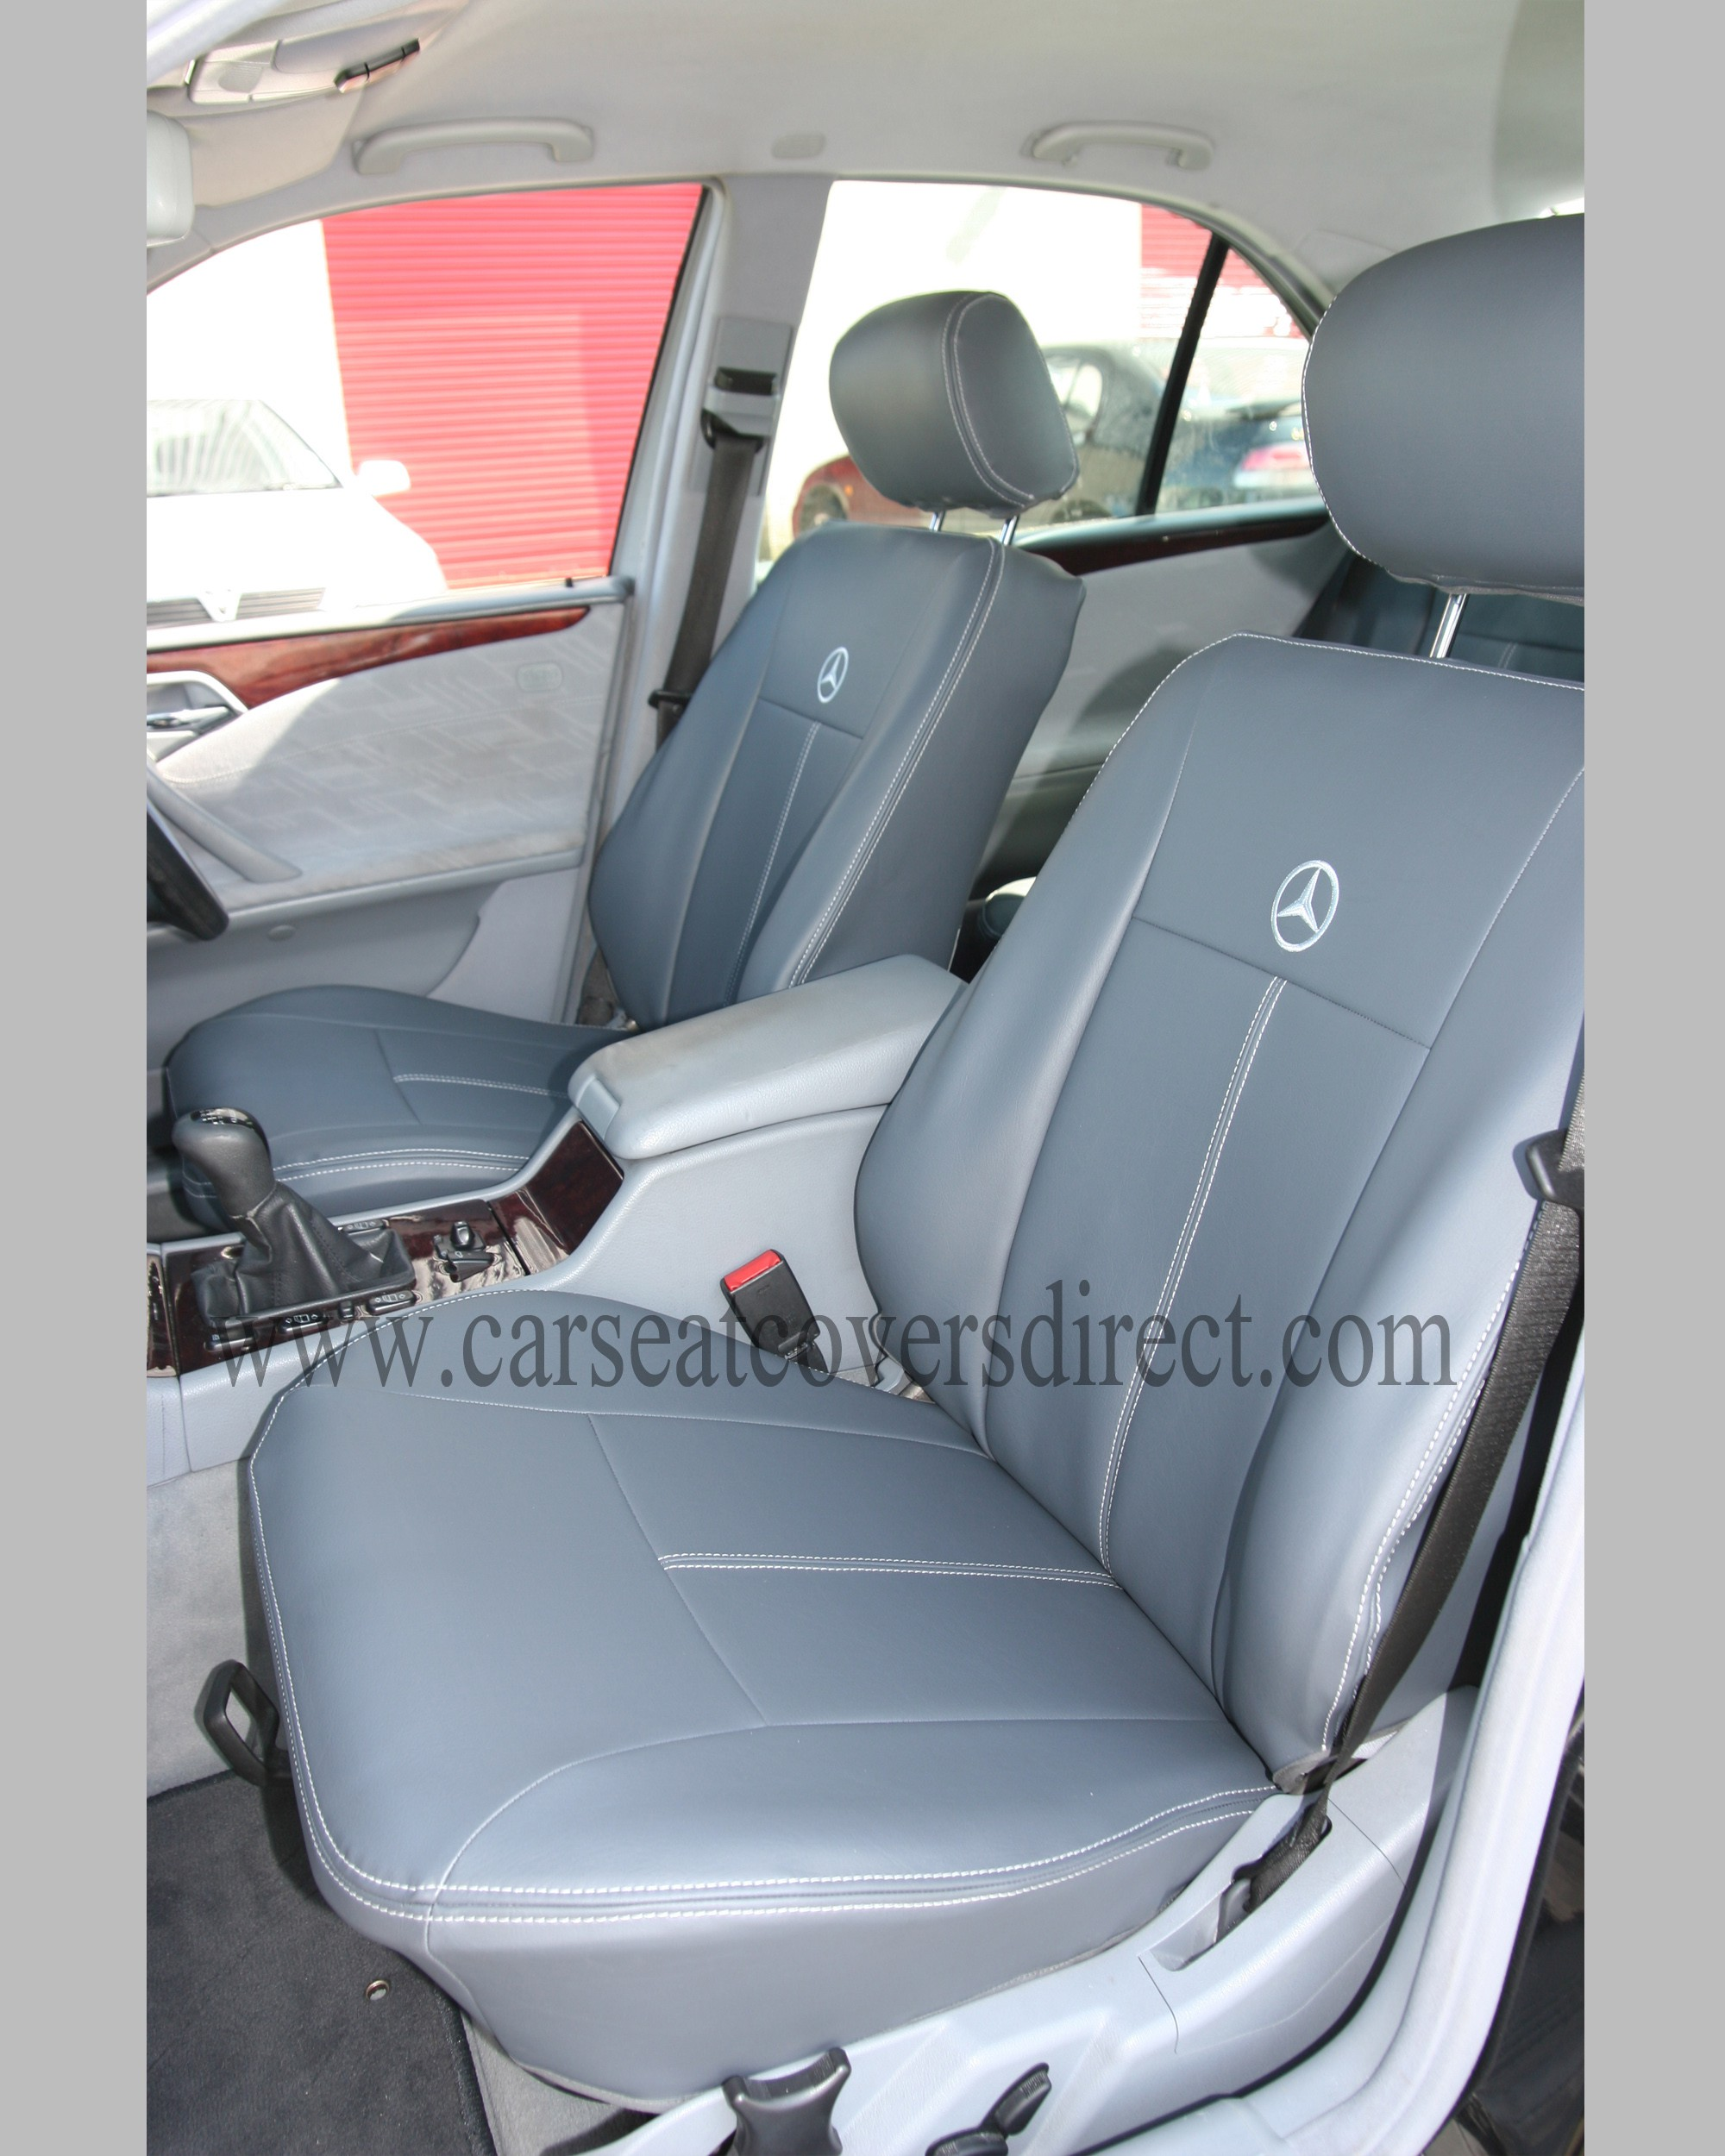 Mercedes e class w210 grey leatherette seat covers car for Mercedes benz e350 car cover